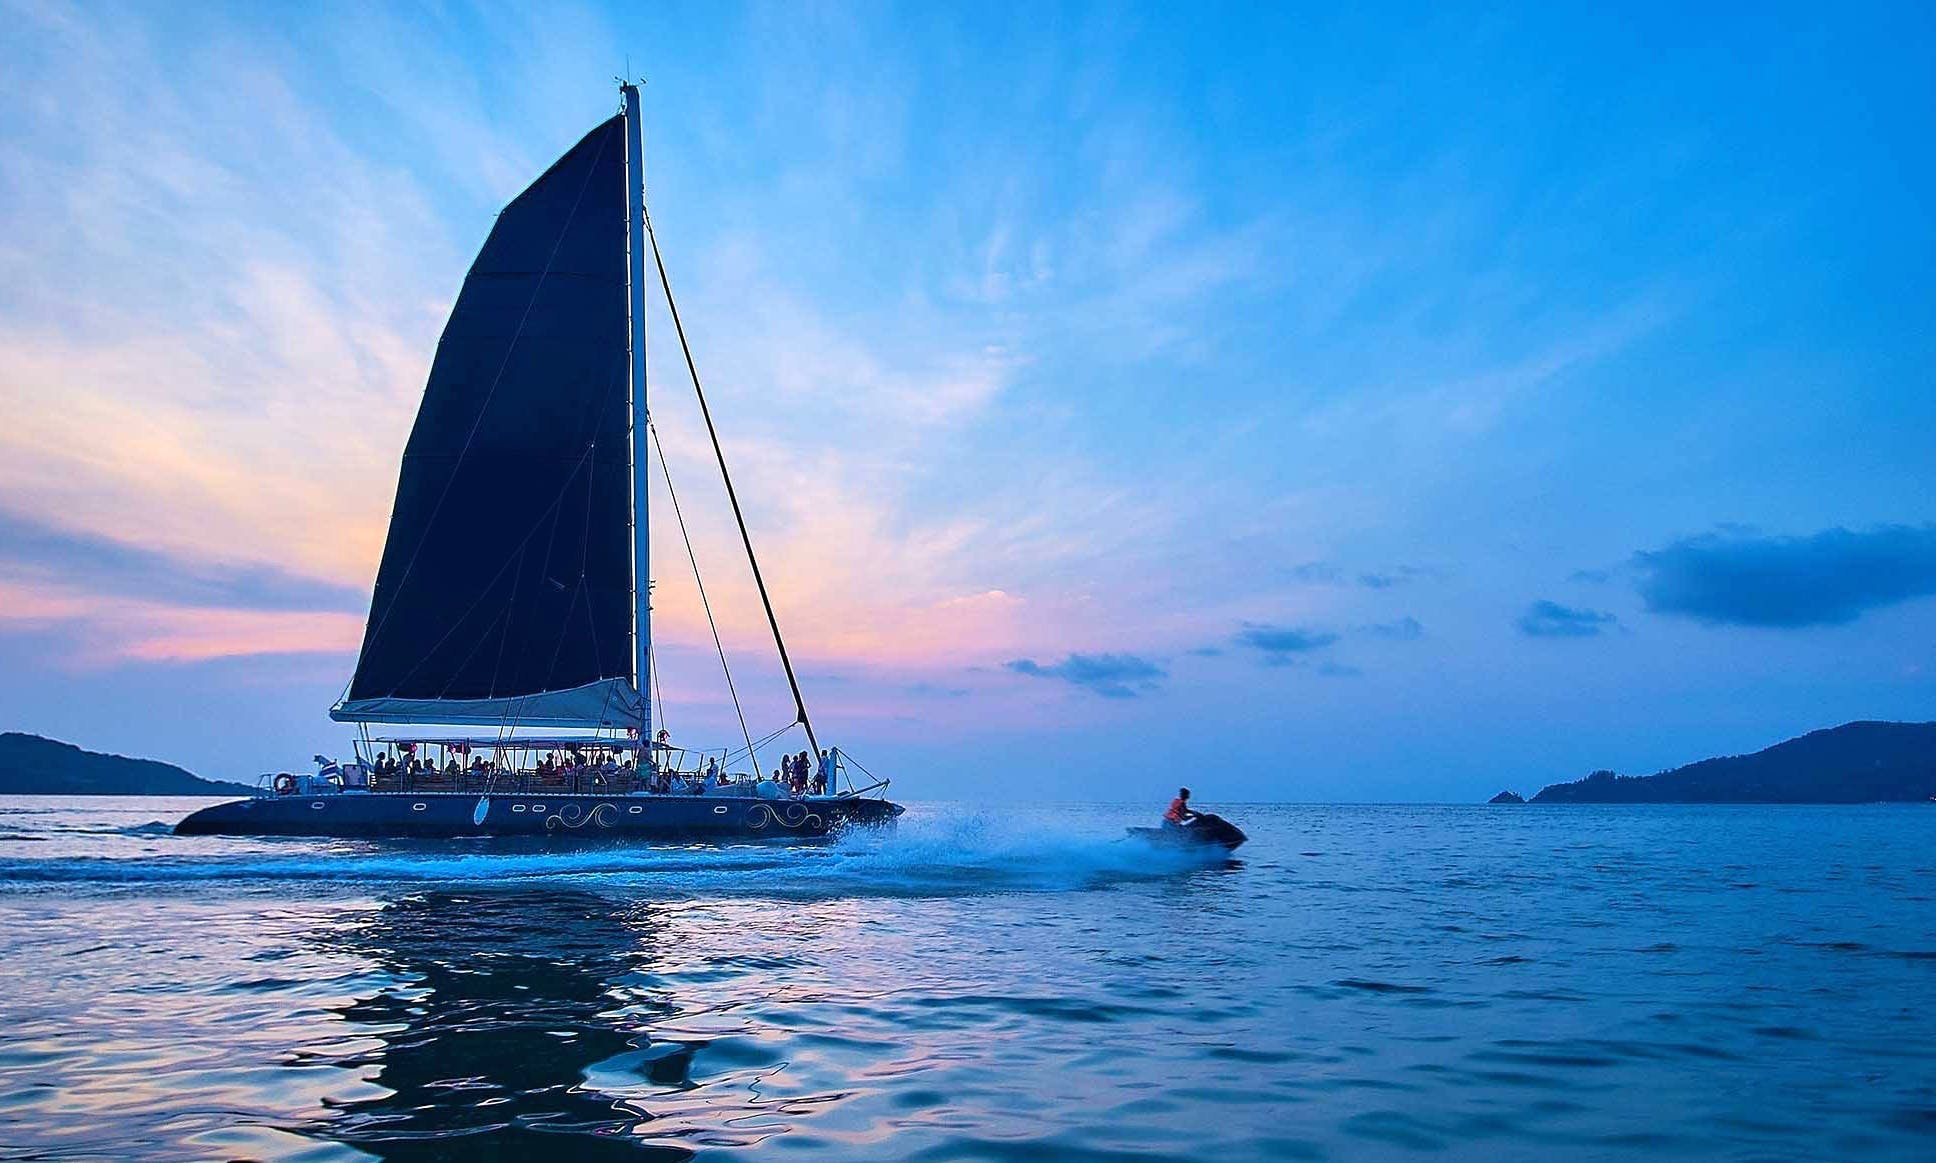 Ocean Voyager Cruising Catamaran Charter for Up to 60 People in Phuket, Thailand